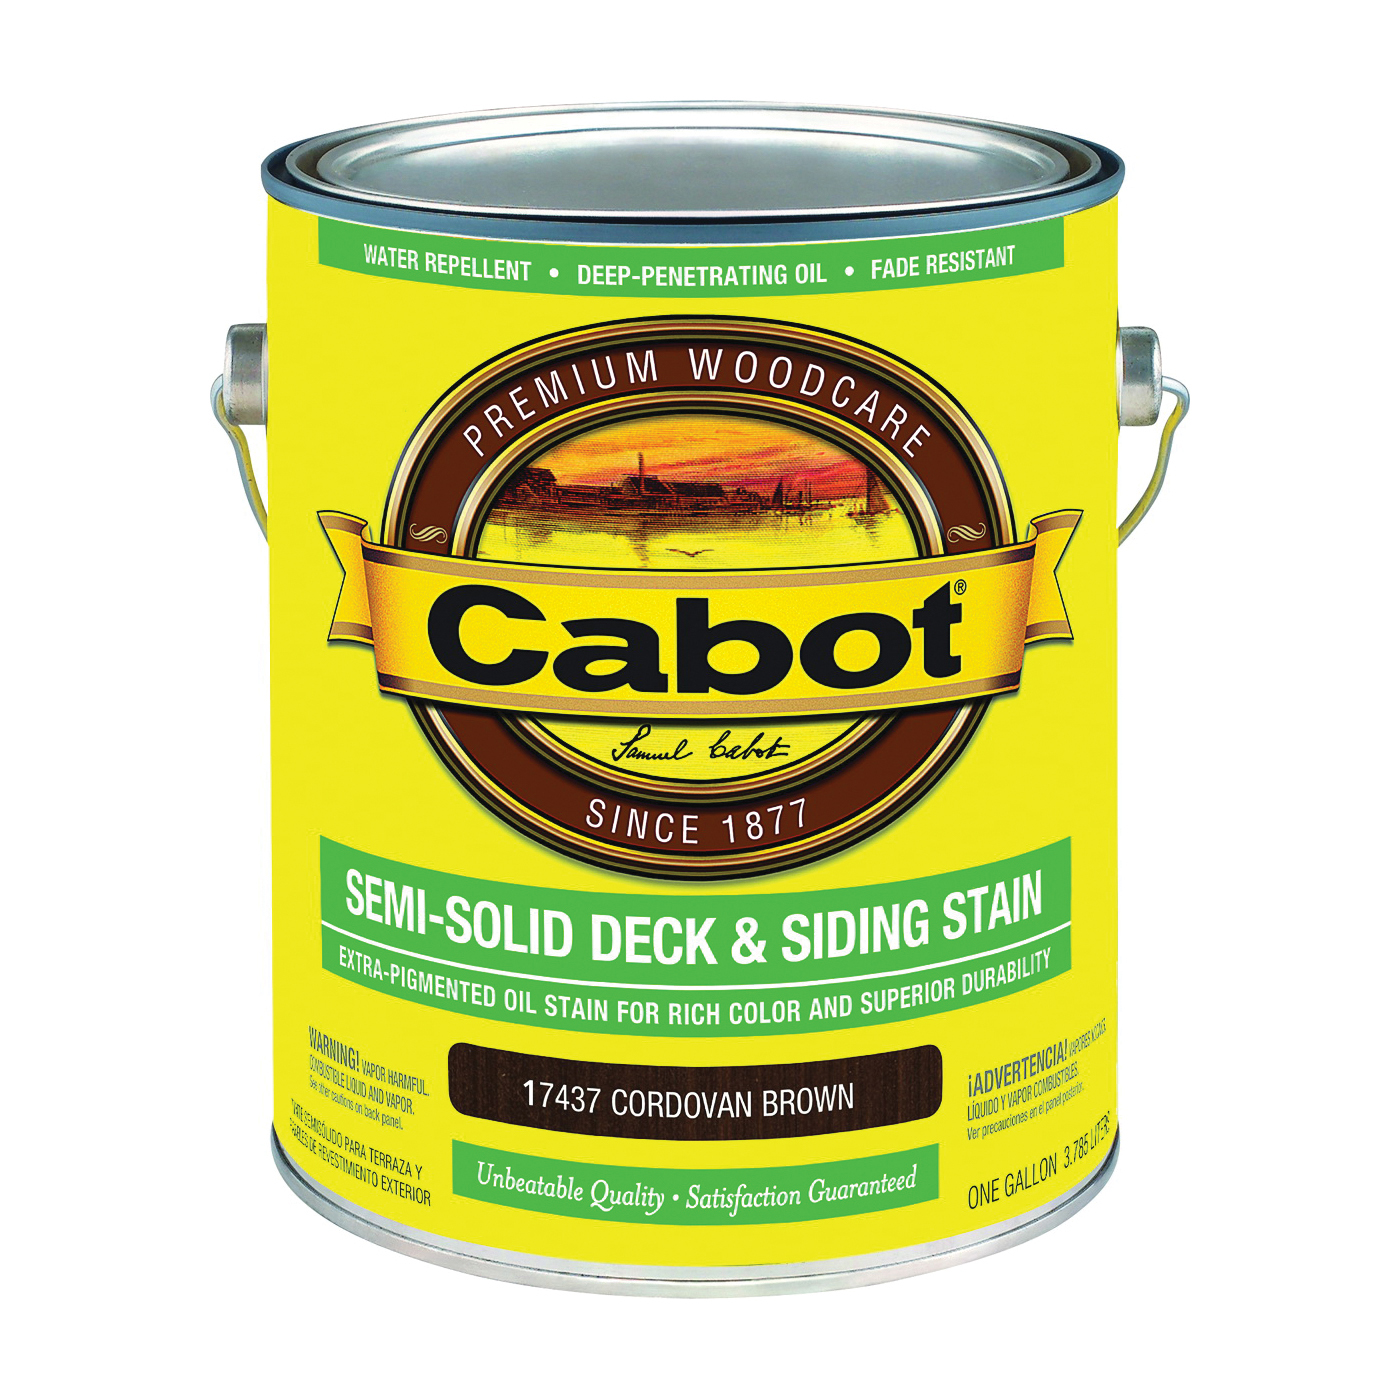 Picture of Cabot 17437 Deck and Siding Stain, Cordovan Brown, Liquid, 1 gal